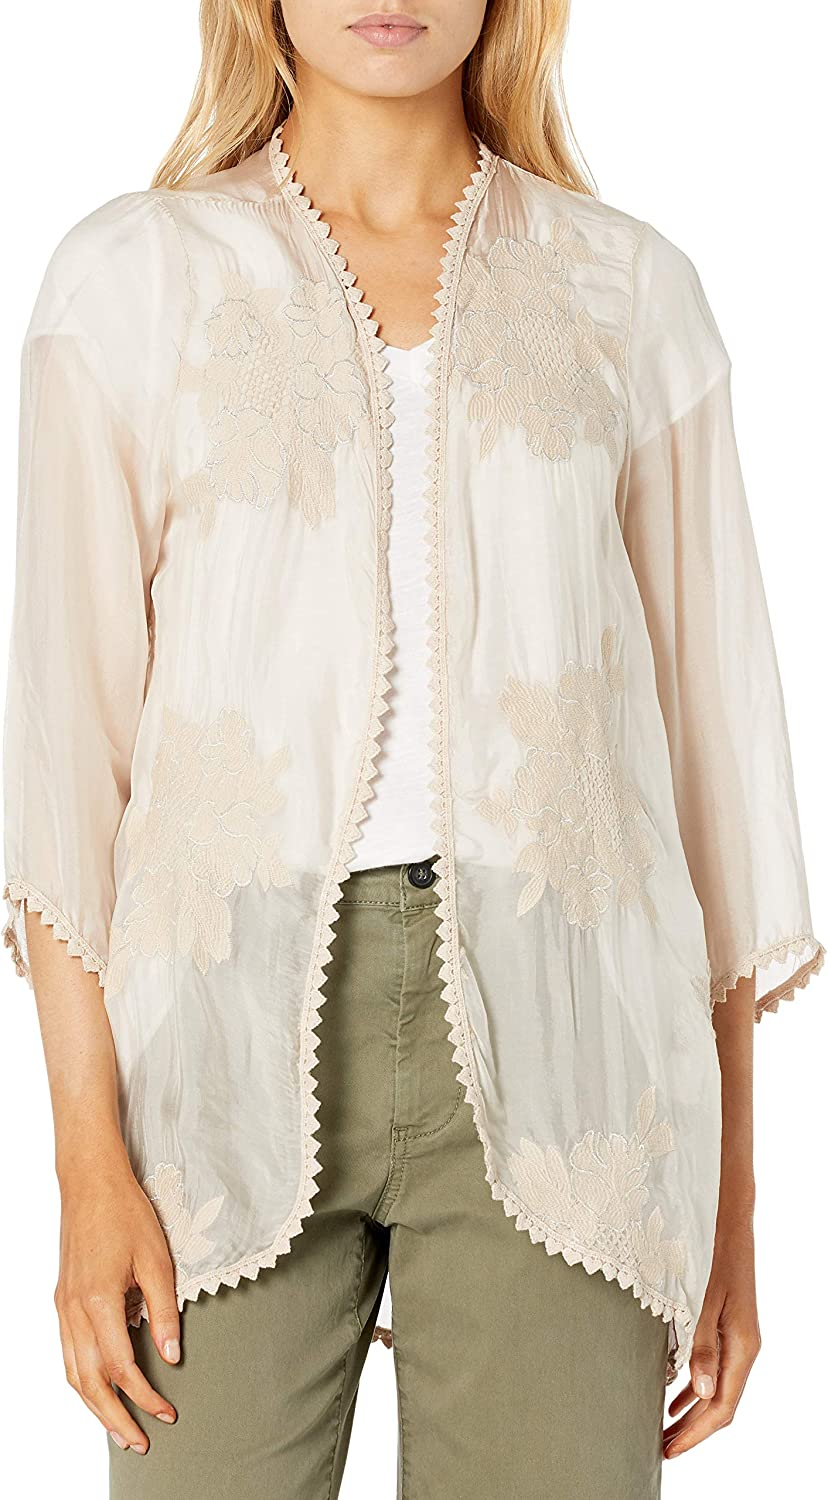 M Made in Italy Women's Embroidered Floral Silky Cardigan